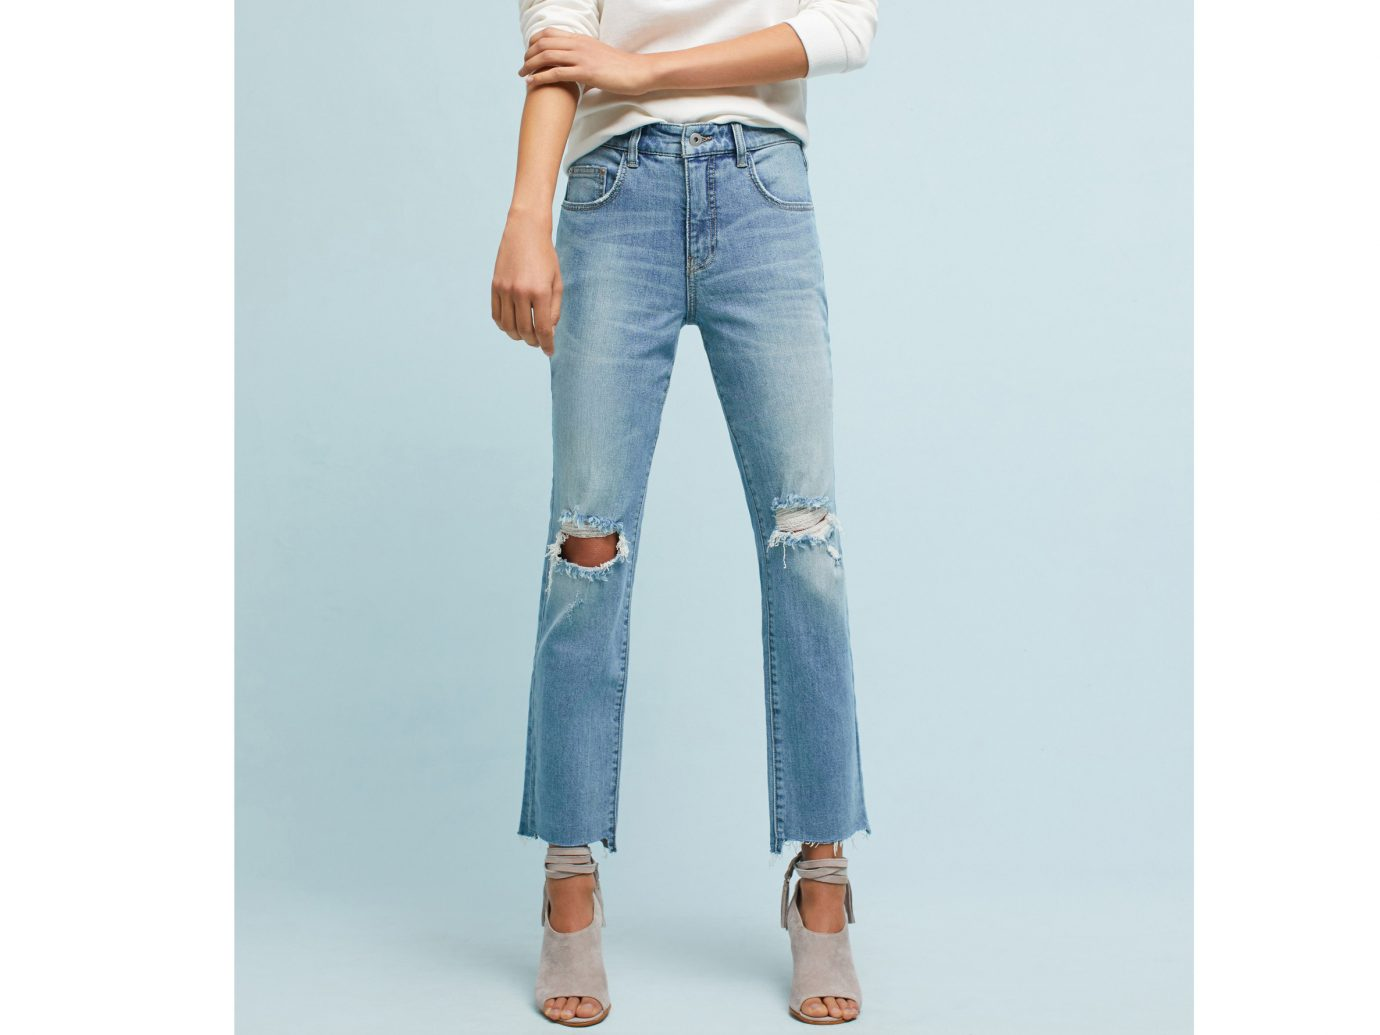 Fall Travel Style + Design Travel Shop Weekend Getaways person jeans denim clothing trouser standing waist pocket trousers joint button